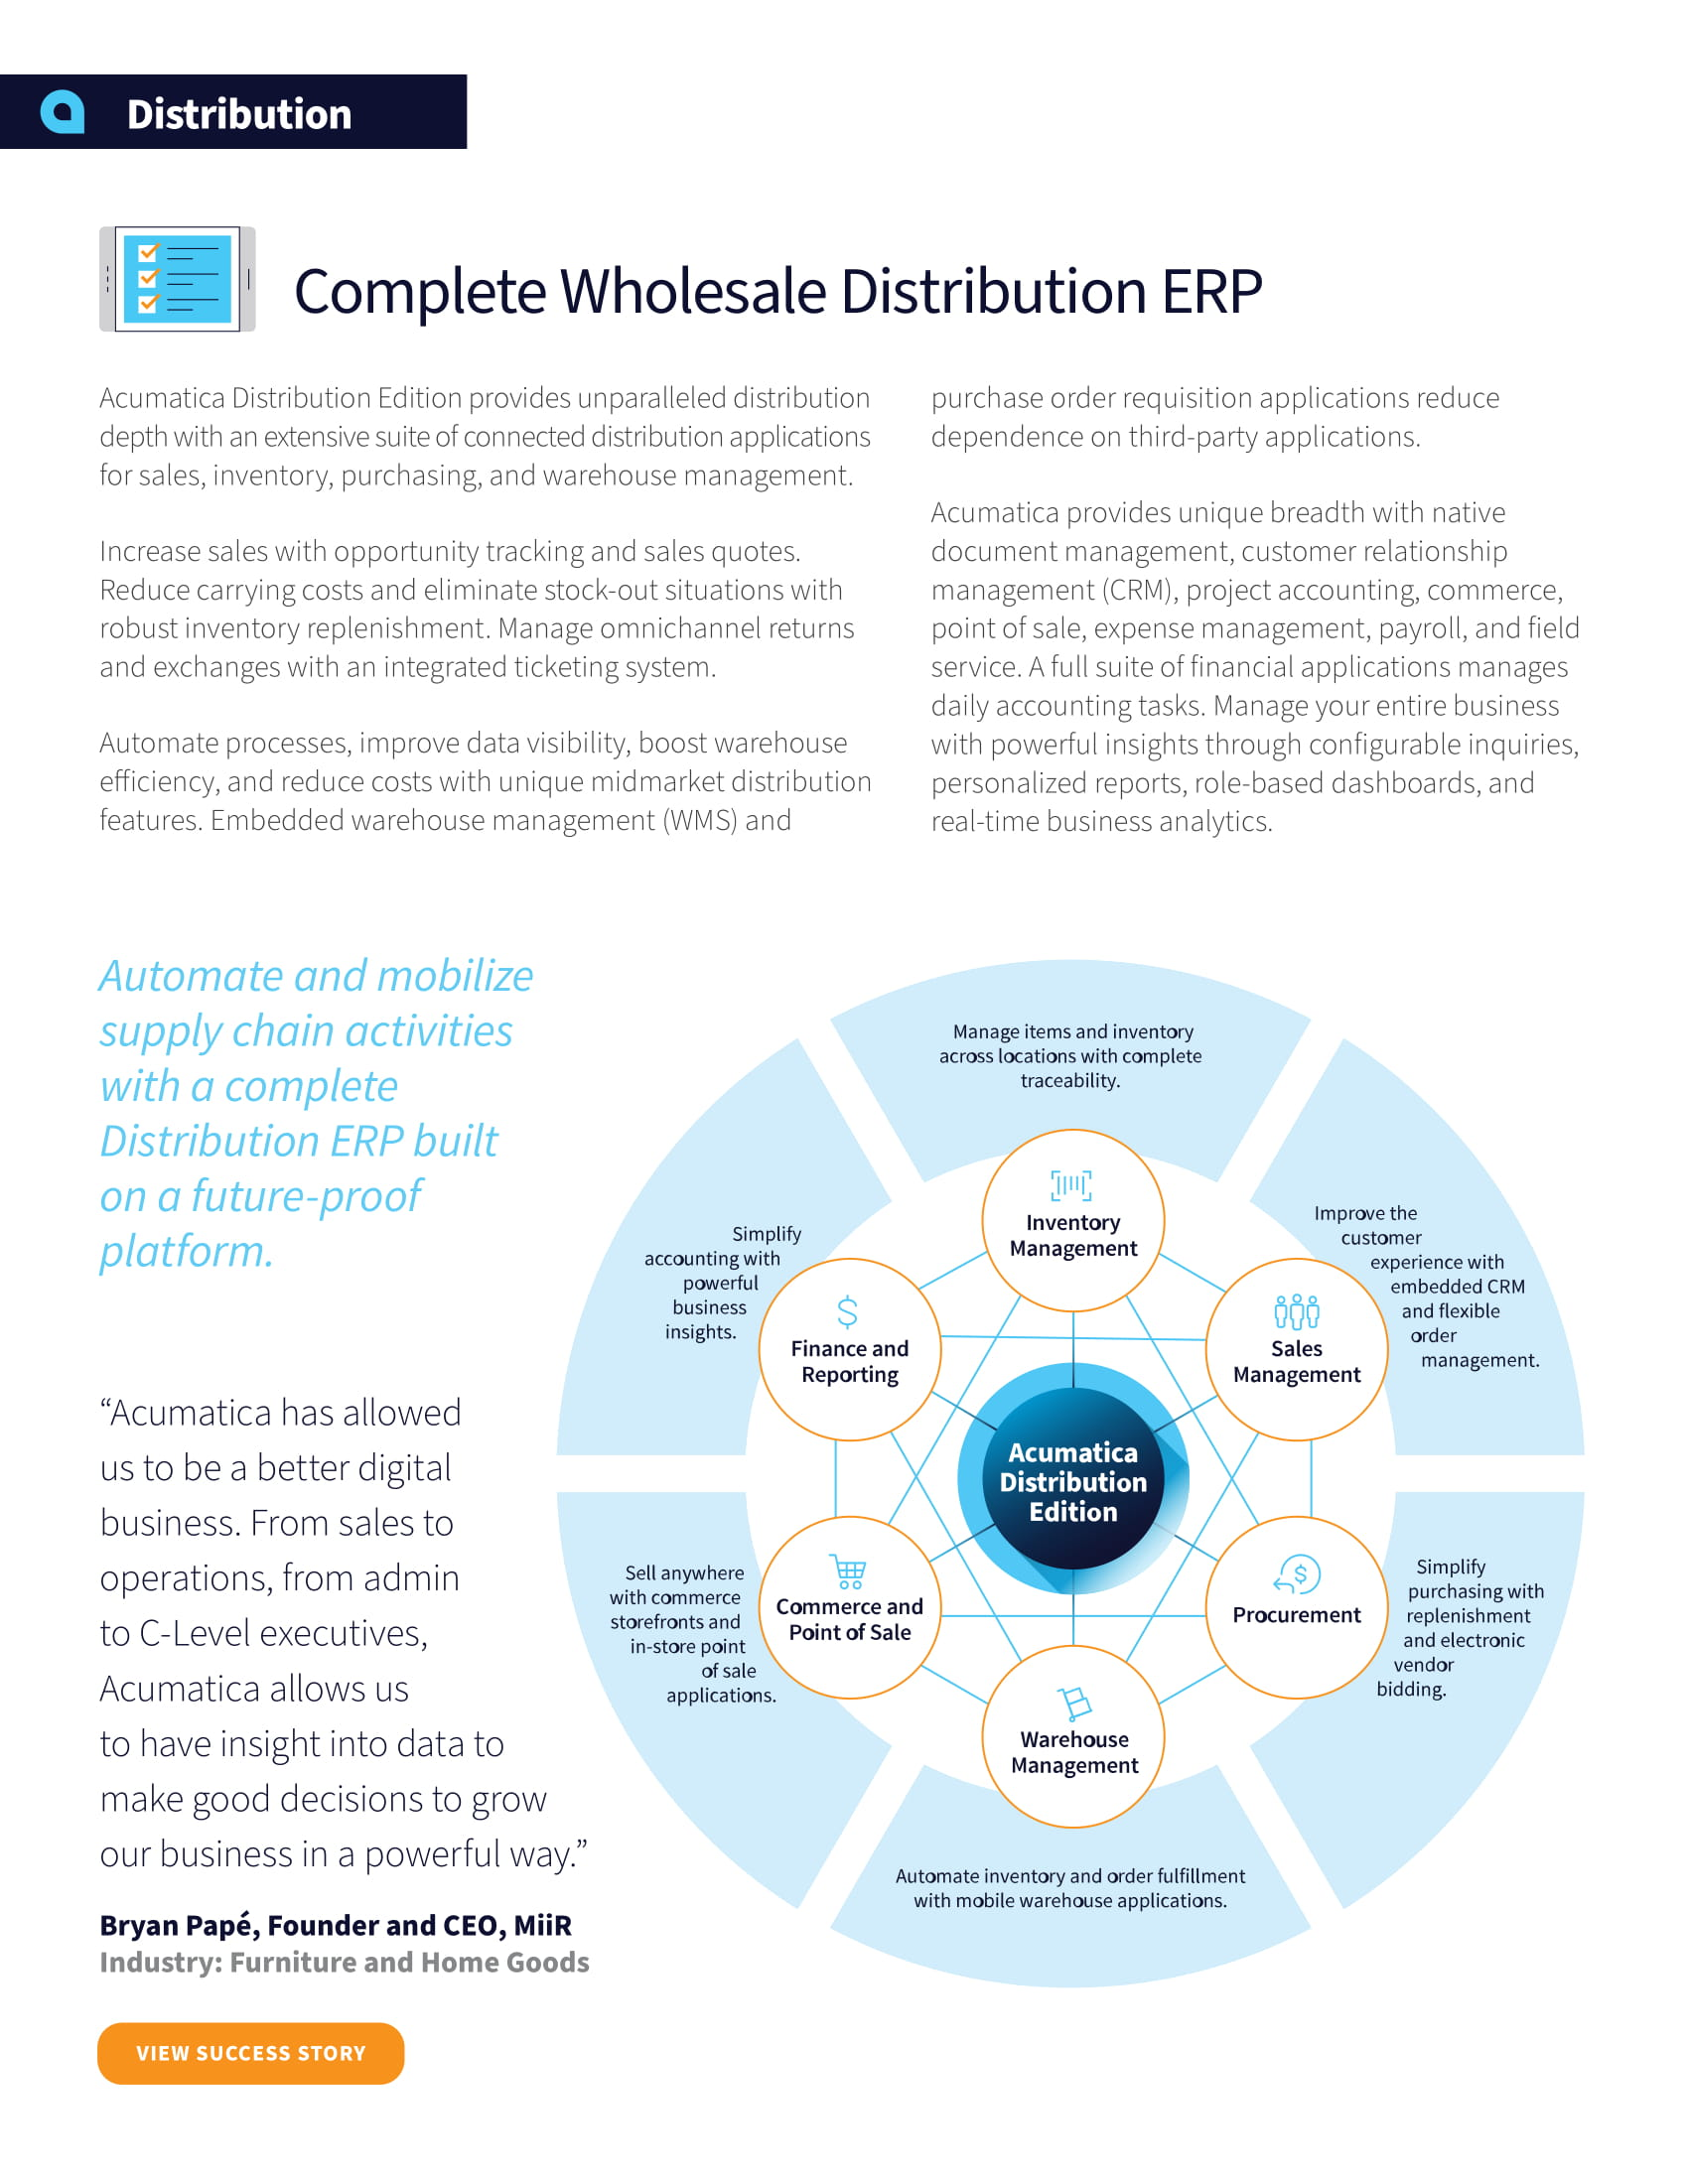 Distribution ERP: Find the Best Blend of Functionality and Simplicity, page 1